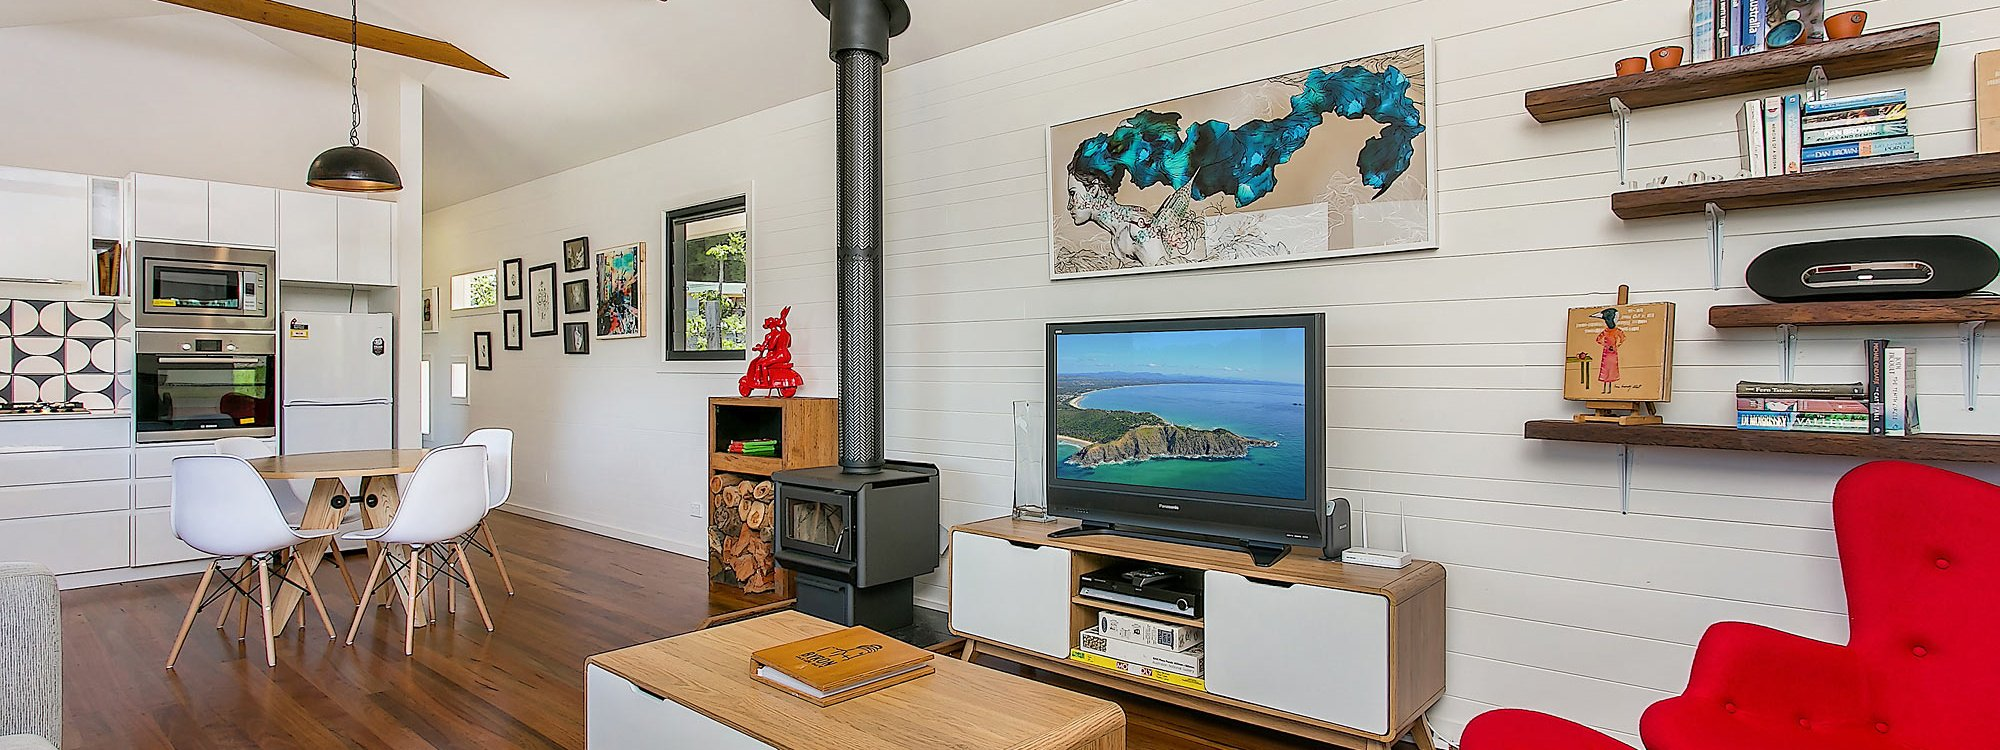 Coorabell Cottages - Rainforest Cottage - Living Area